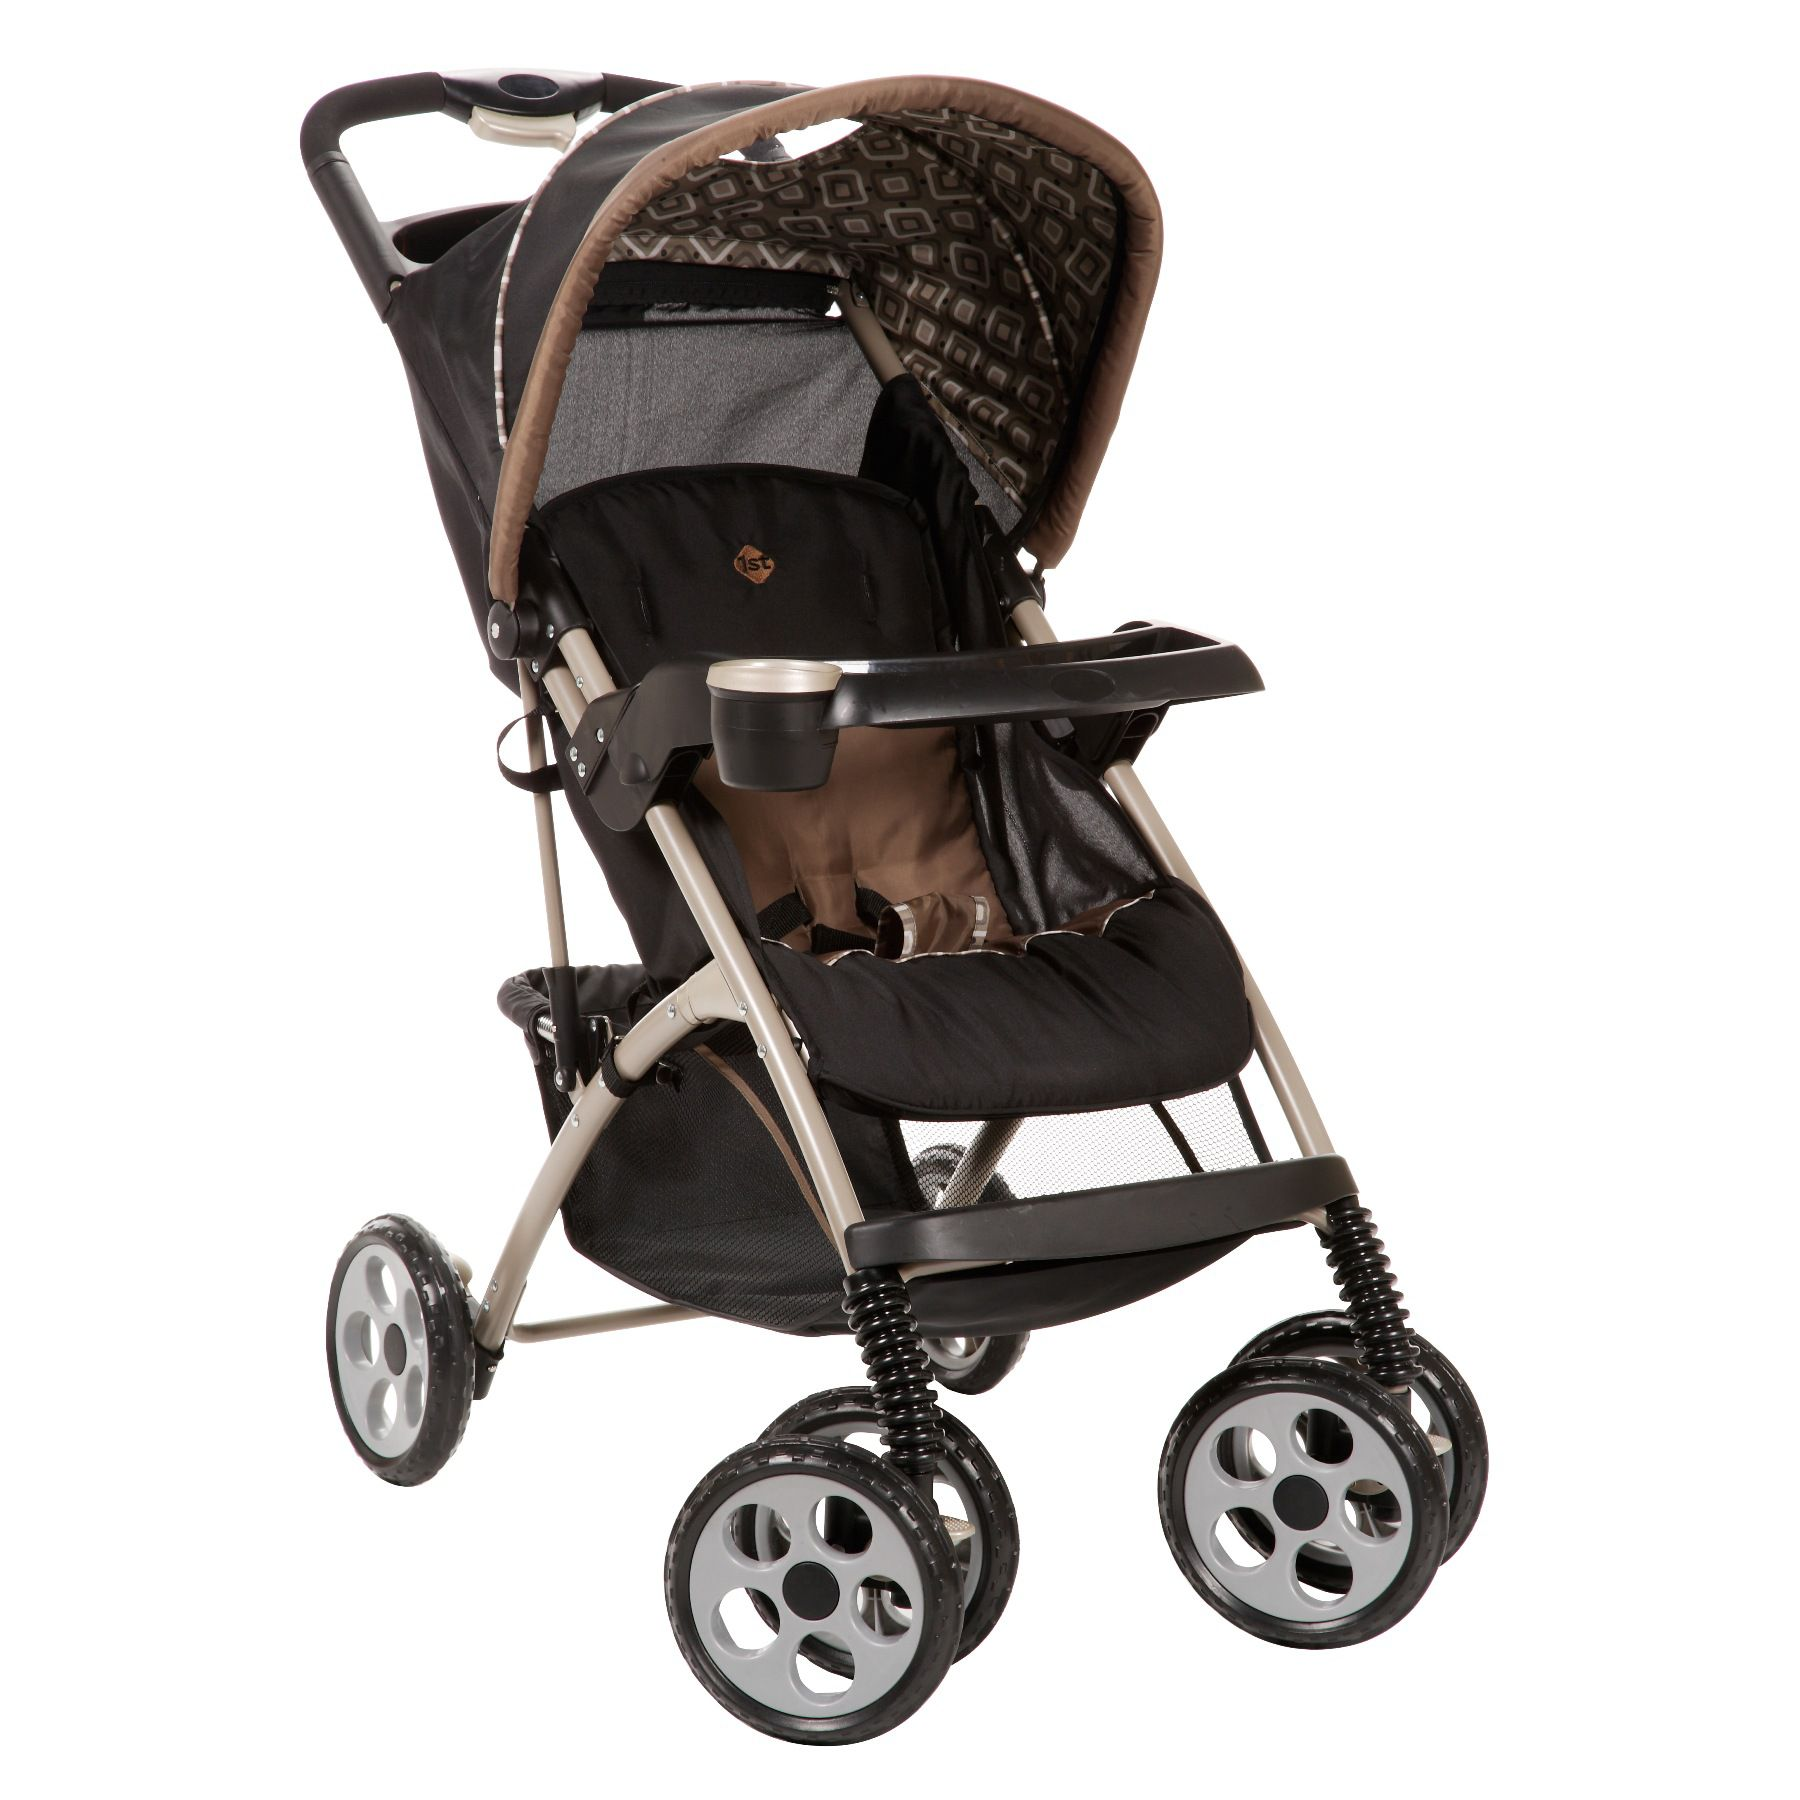 Acella™ Go Light Stroller - Nova                                                                                            at mygofer.com